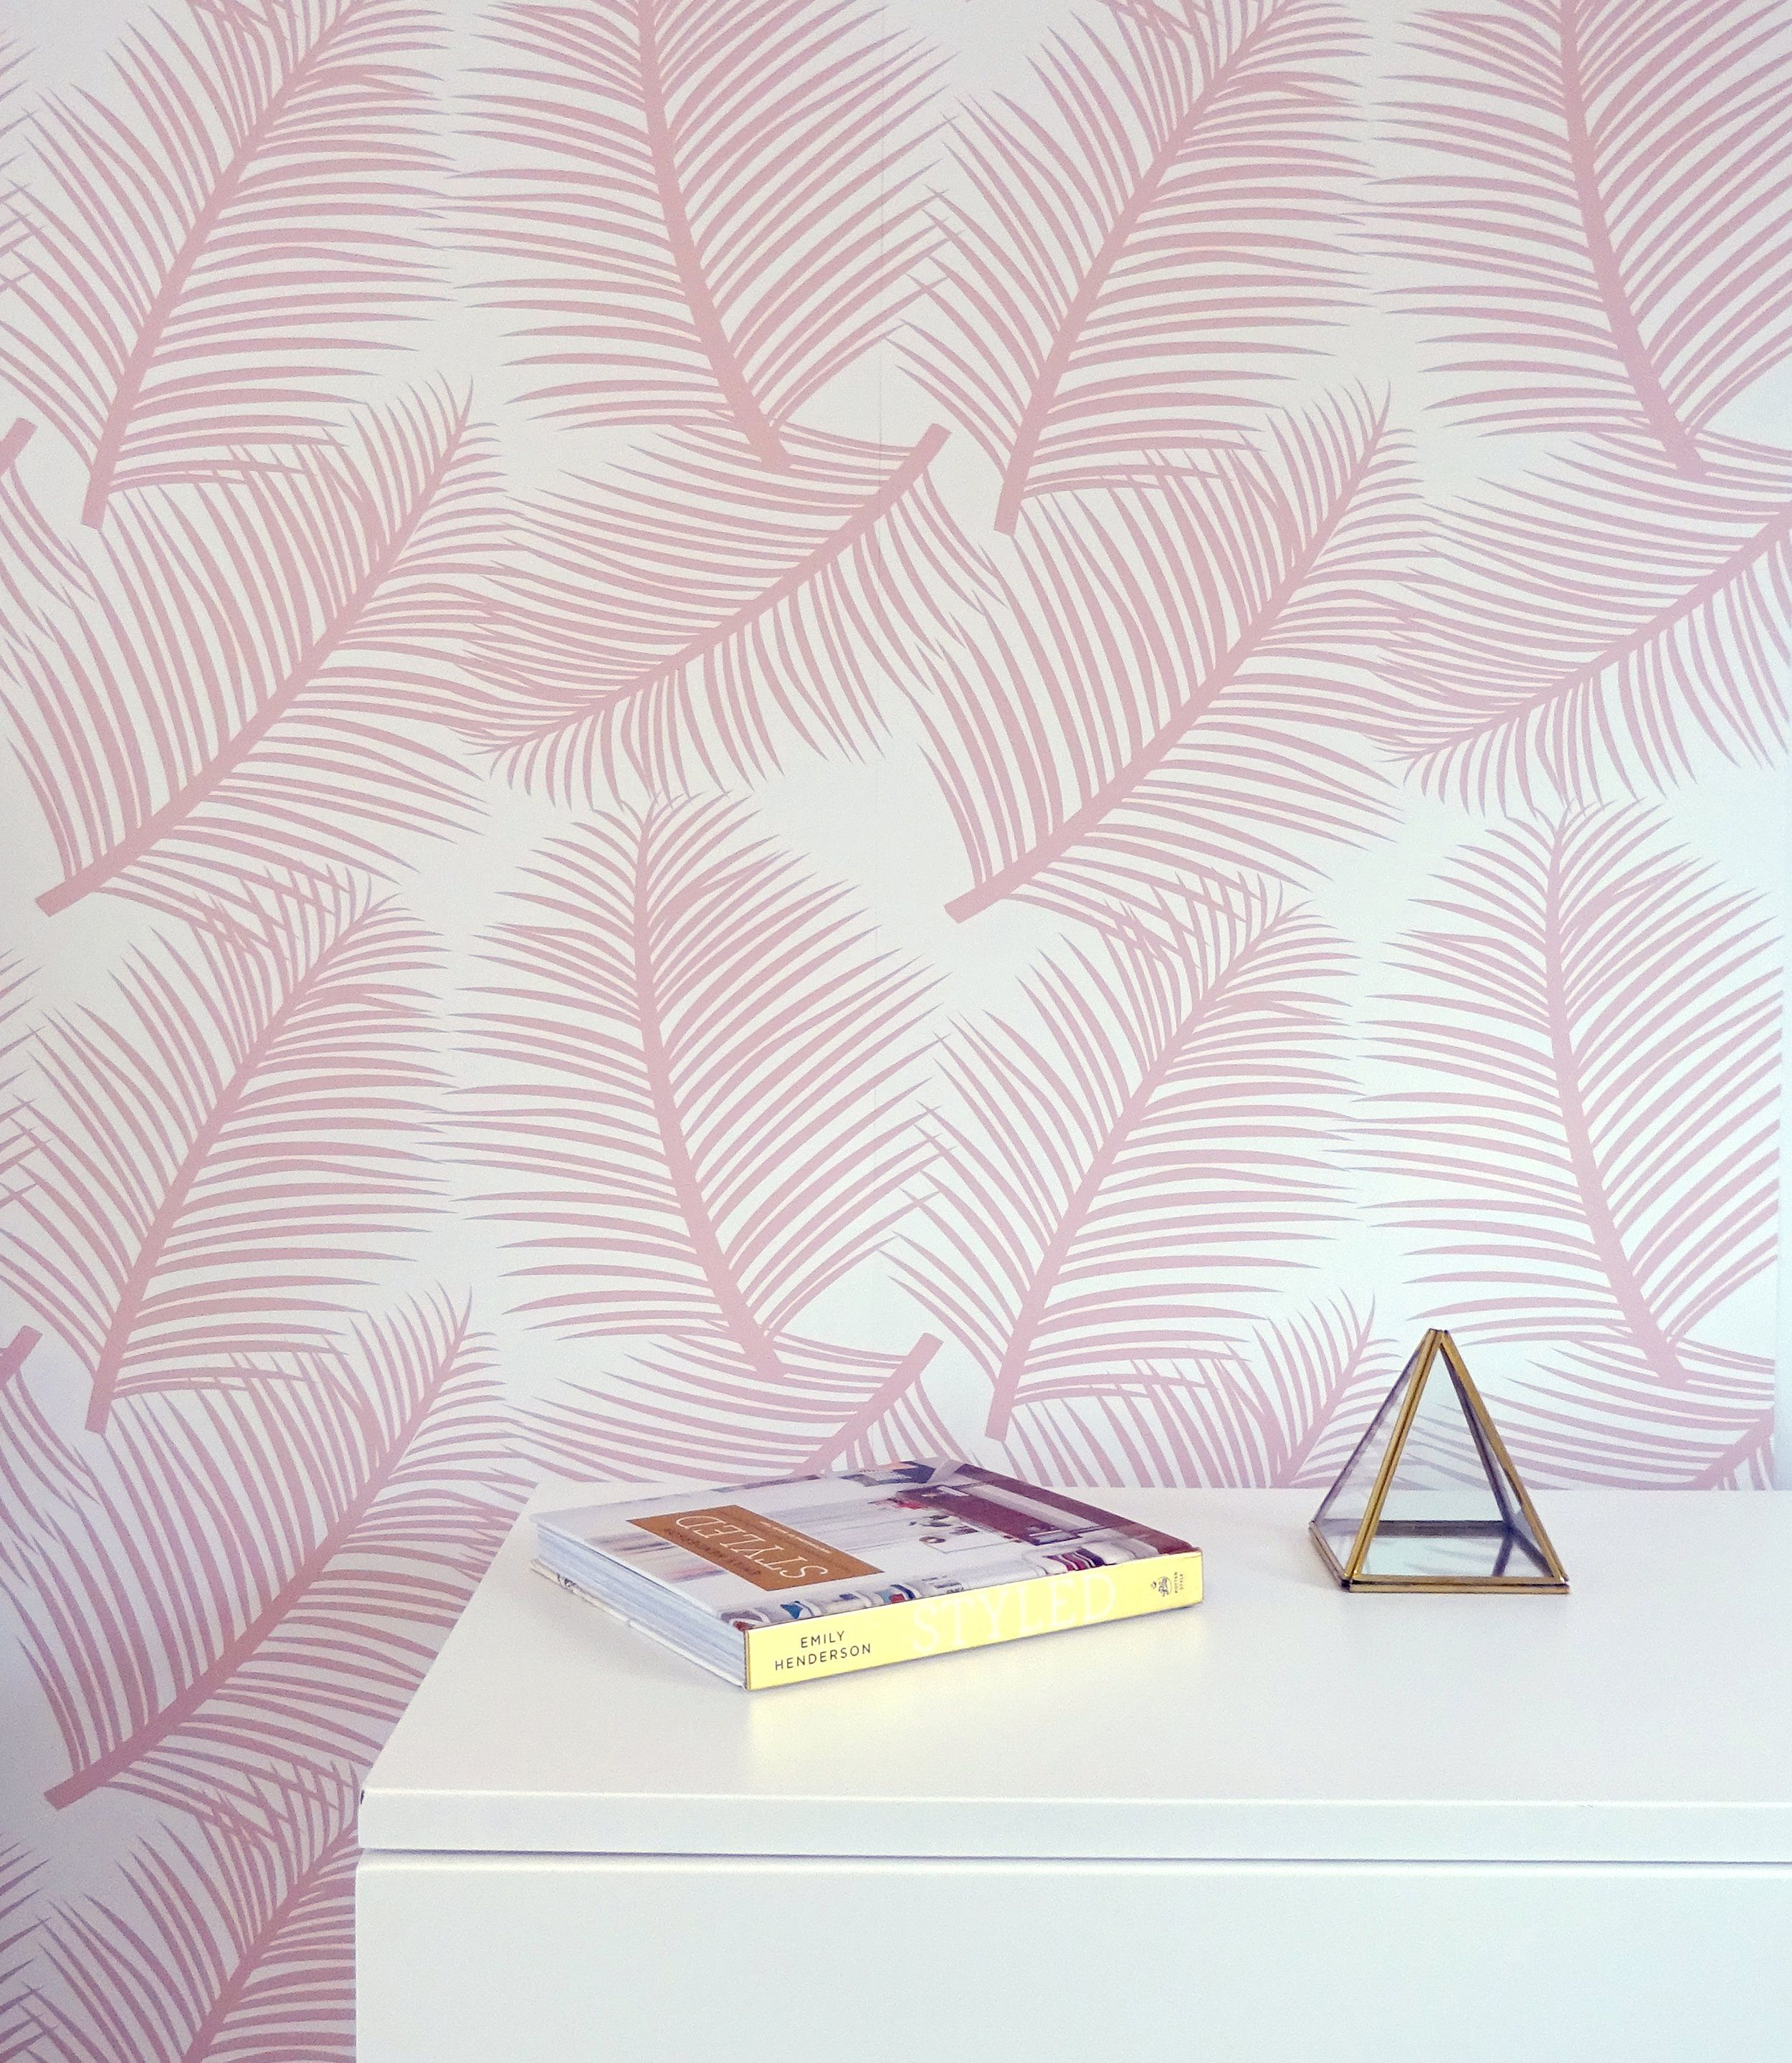 This Stunning Wallpaper In A Delicate Blush Shade Allows You To Add A Light And Airy Yet Elegant Element Tree Wallpaper Bedroom Pink Wall Decor Tree Wallpaper